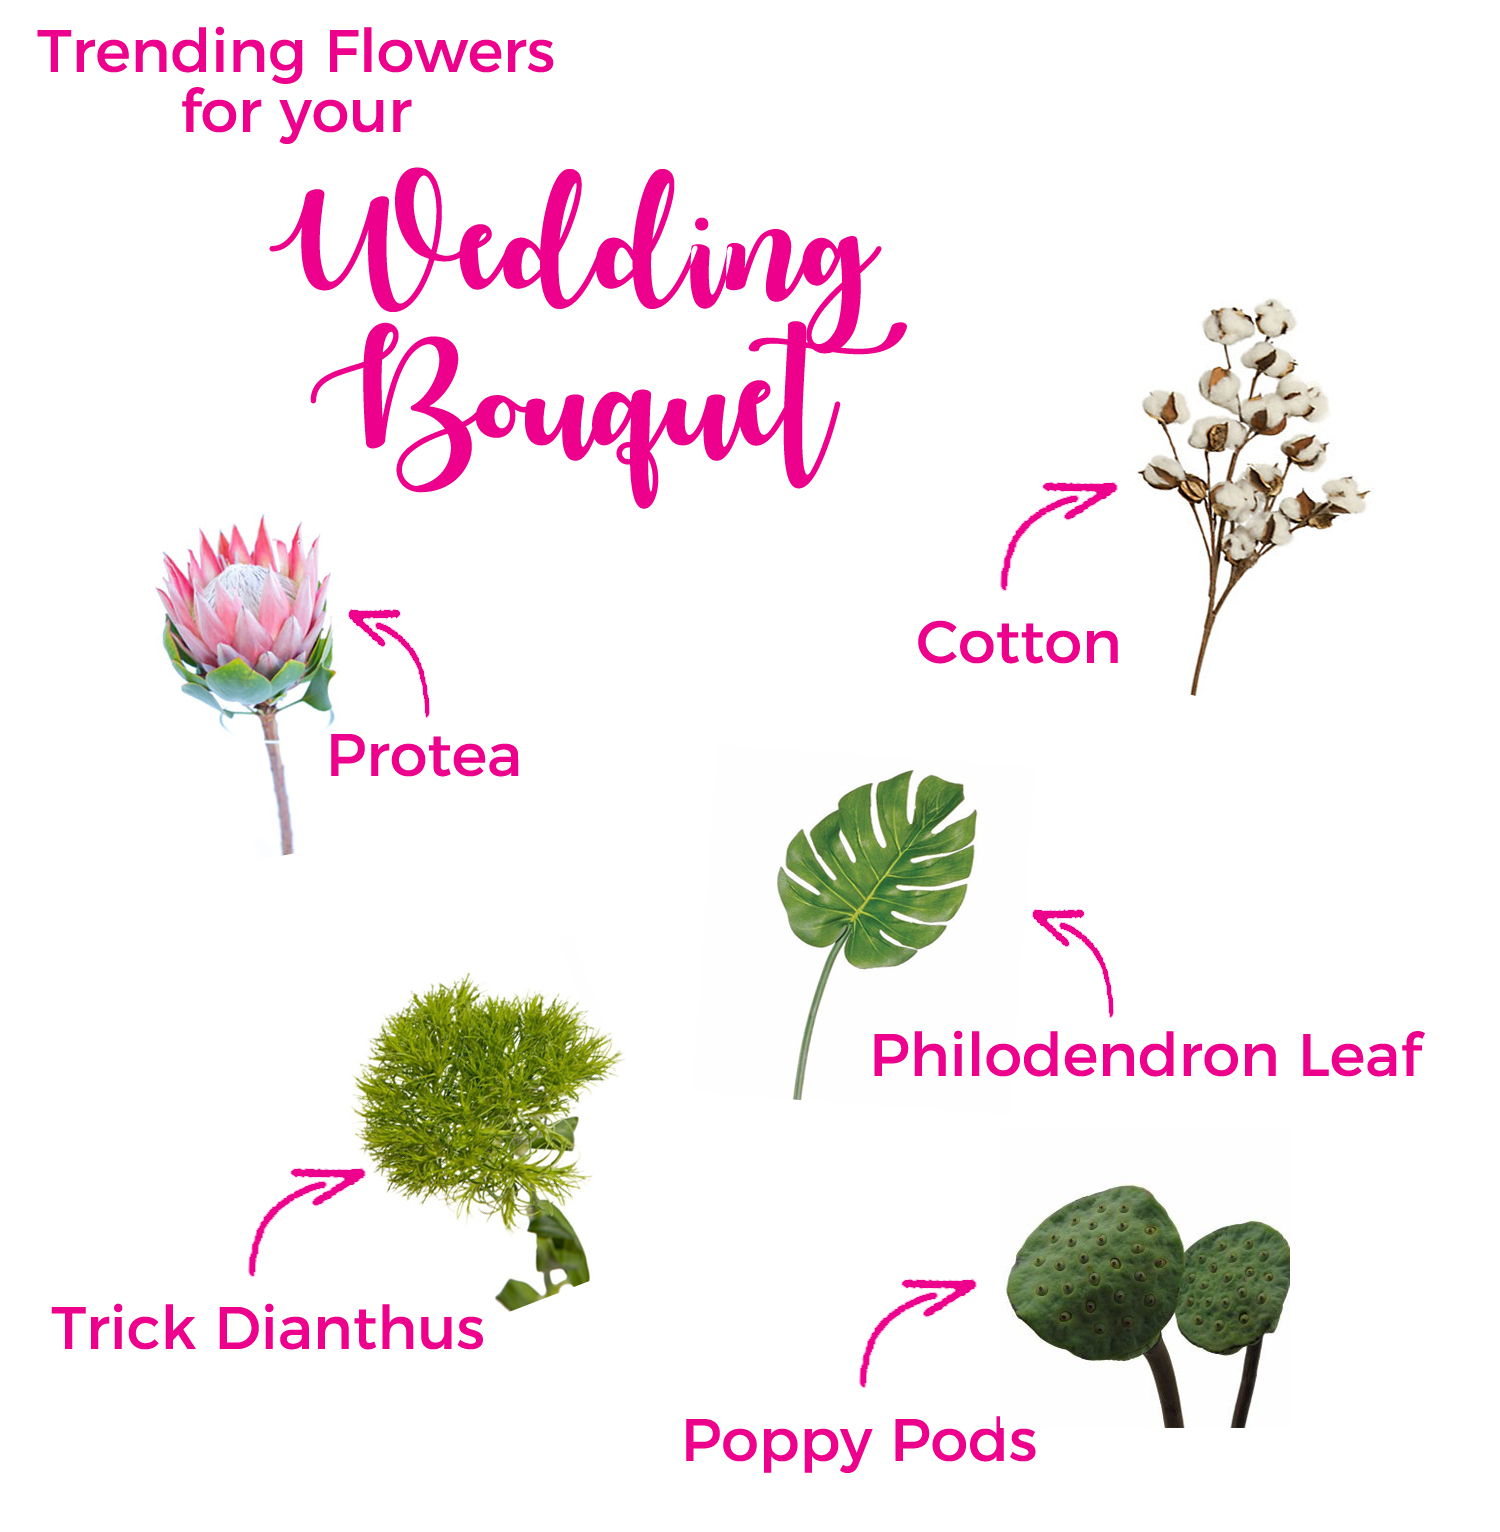 Flower Glossary | As seen on TodaysBride.com